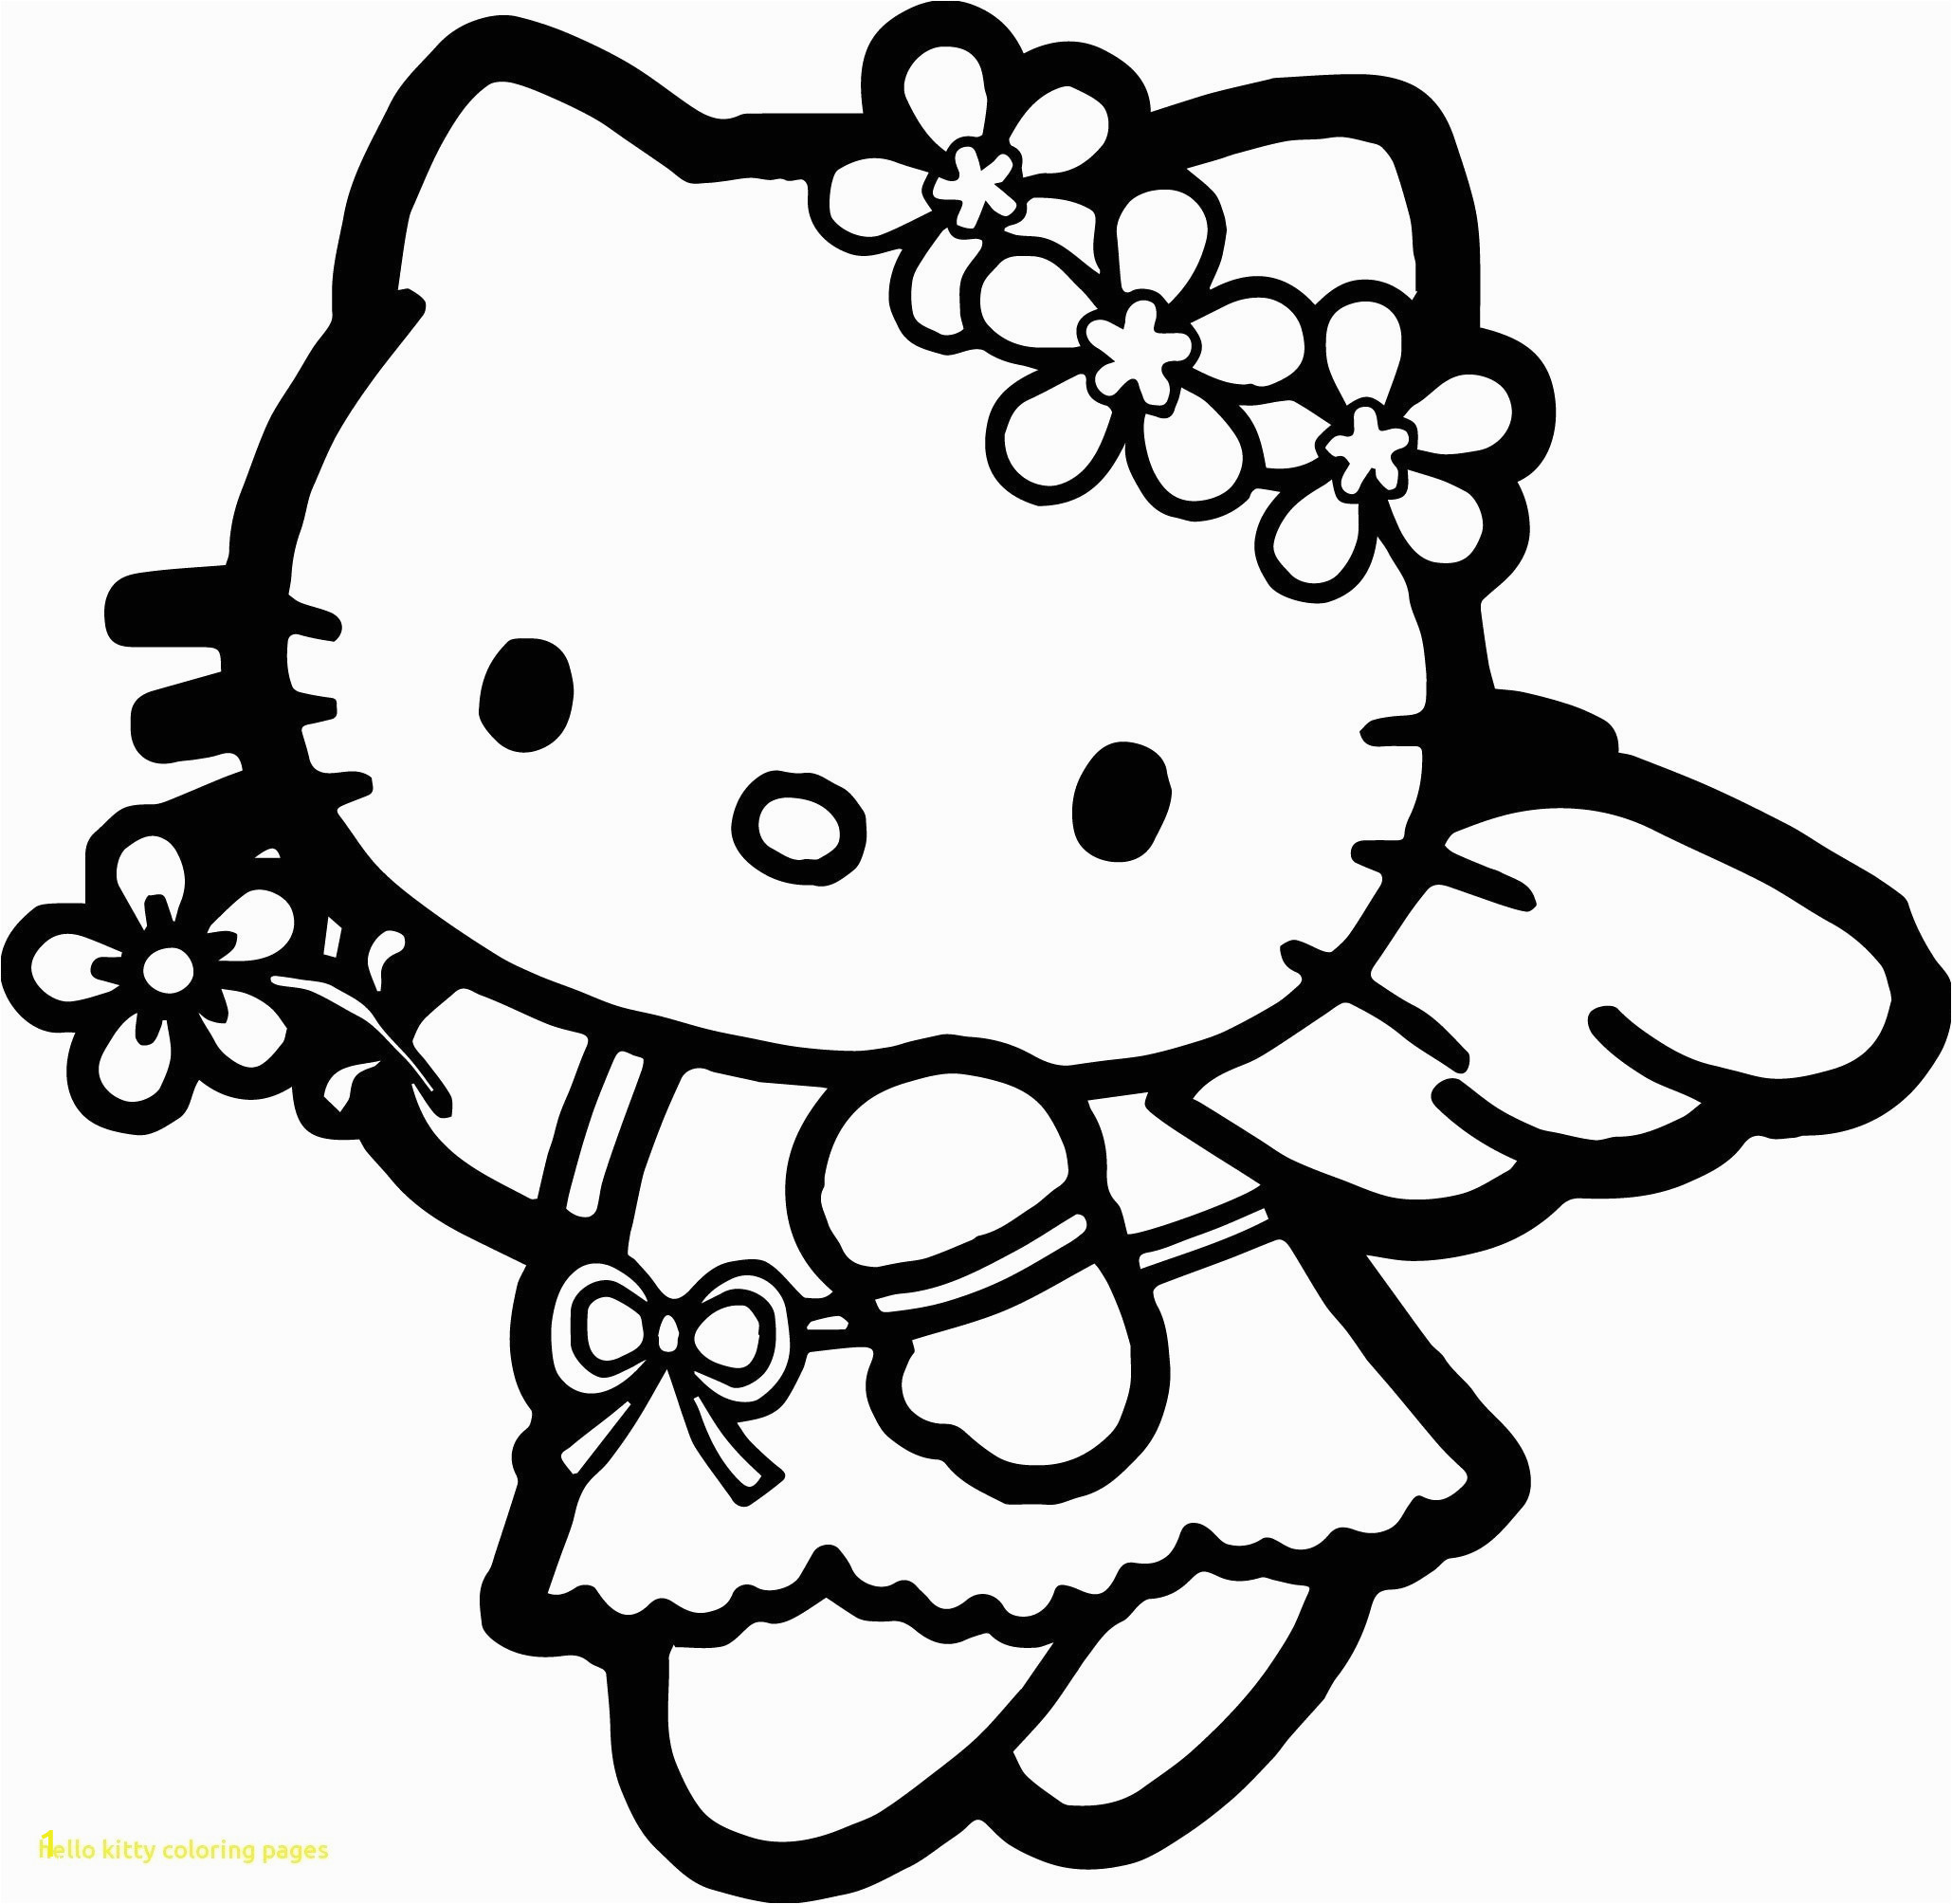 hello kitty mermaid coloring pages inspirational coloring book hello kitty coloring sheets hello kitty of hello kitty mermaid coloring pages